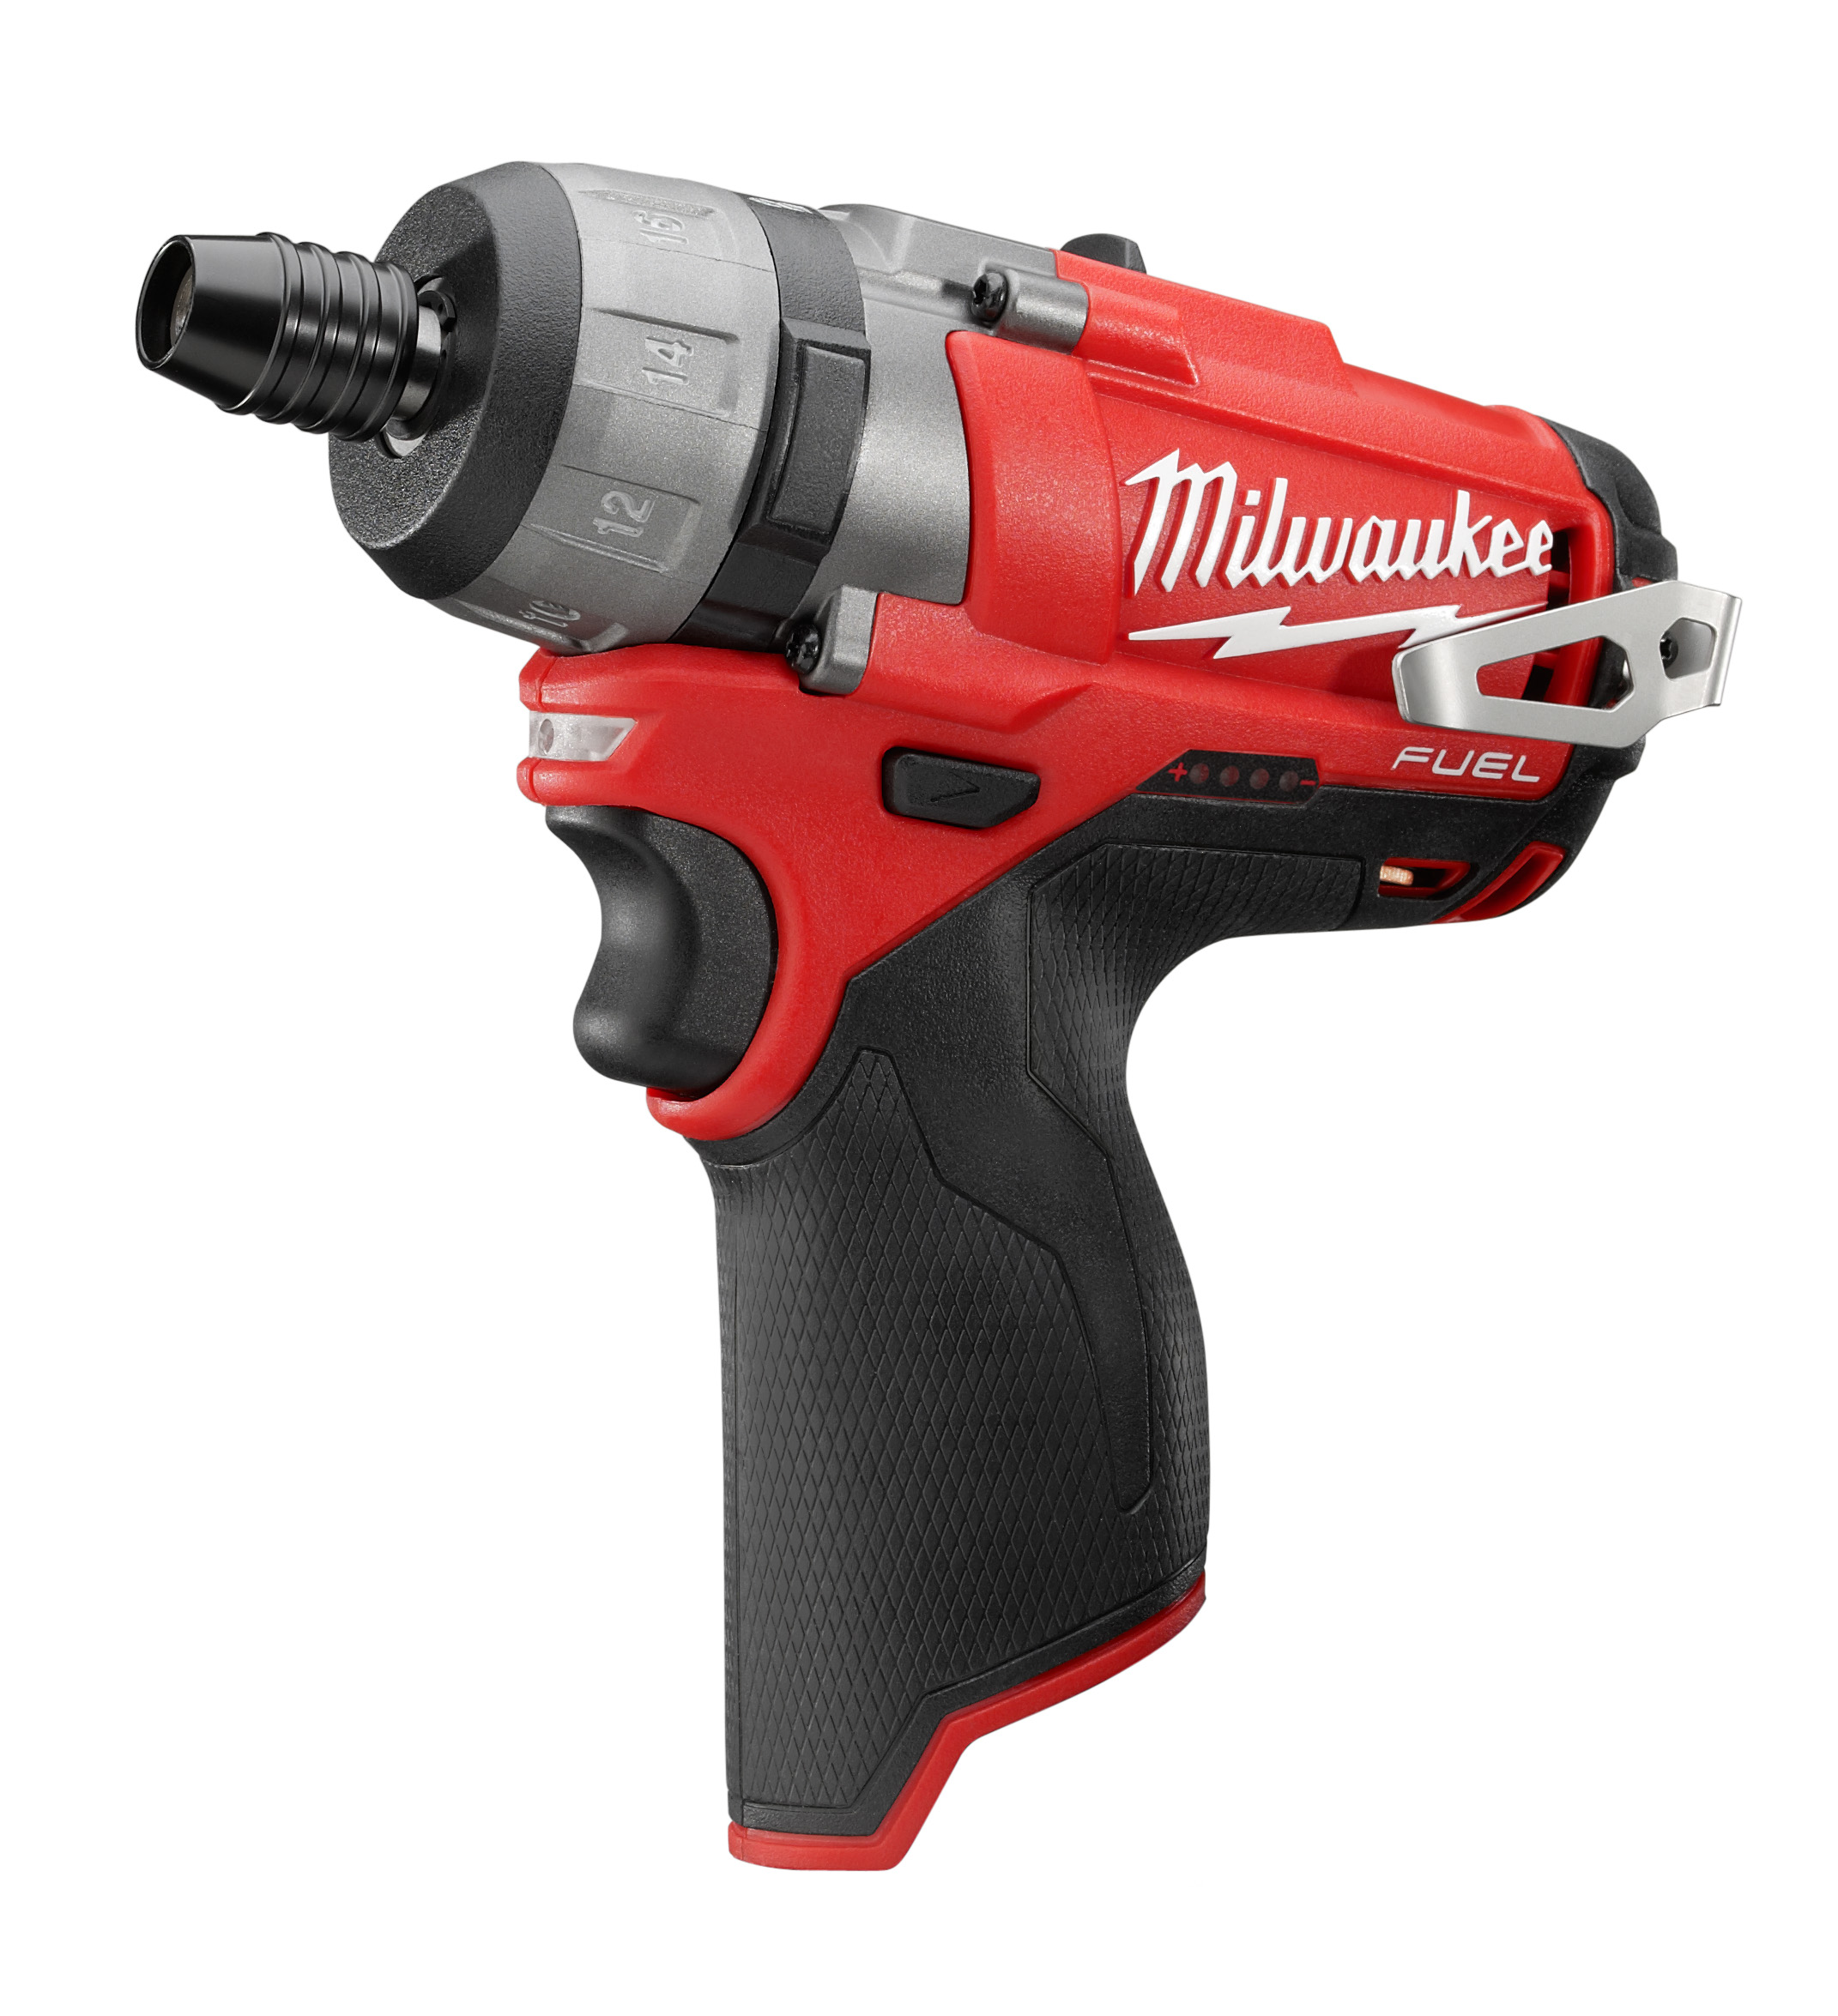 Milwaukee® M12™ FUEL™ 2402-20 Compact Cordless Screwdriver, 1/4 in Chuck, 12 VDC, 325 in-lb Torque, Lithium-Ion Battery